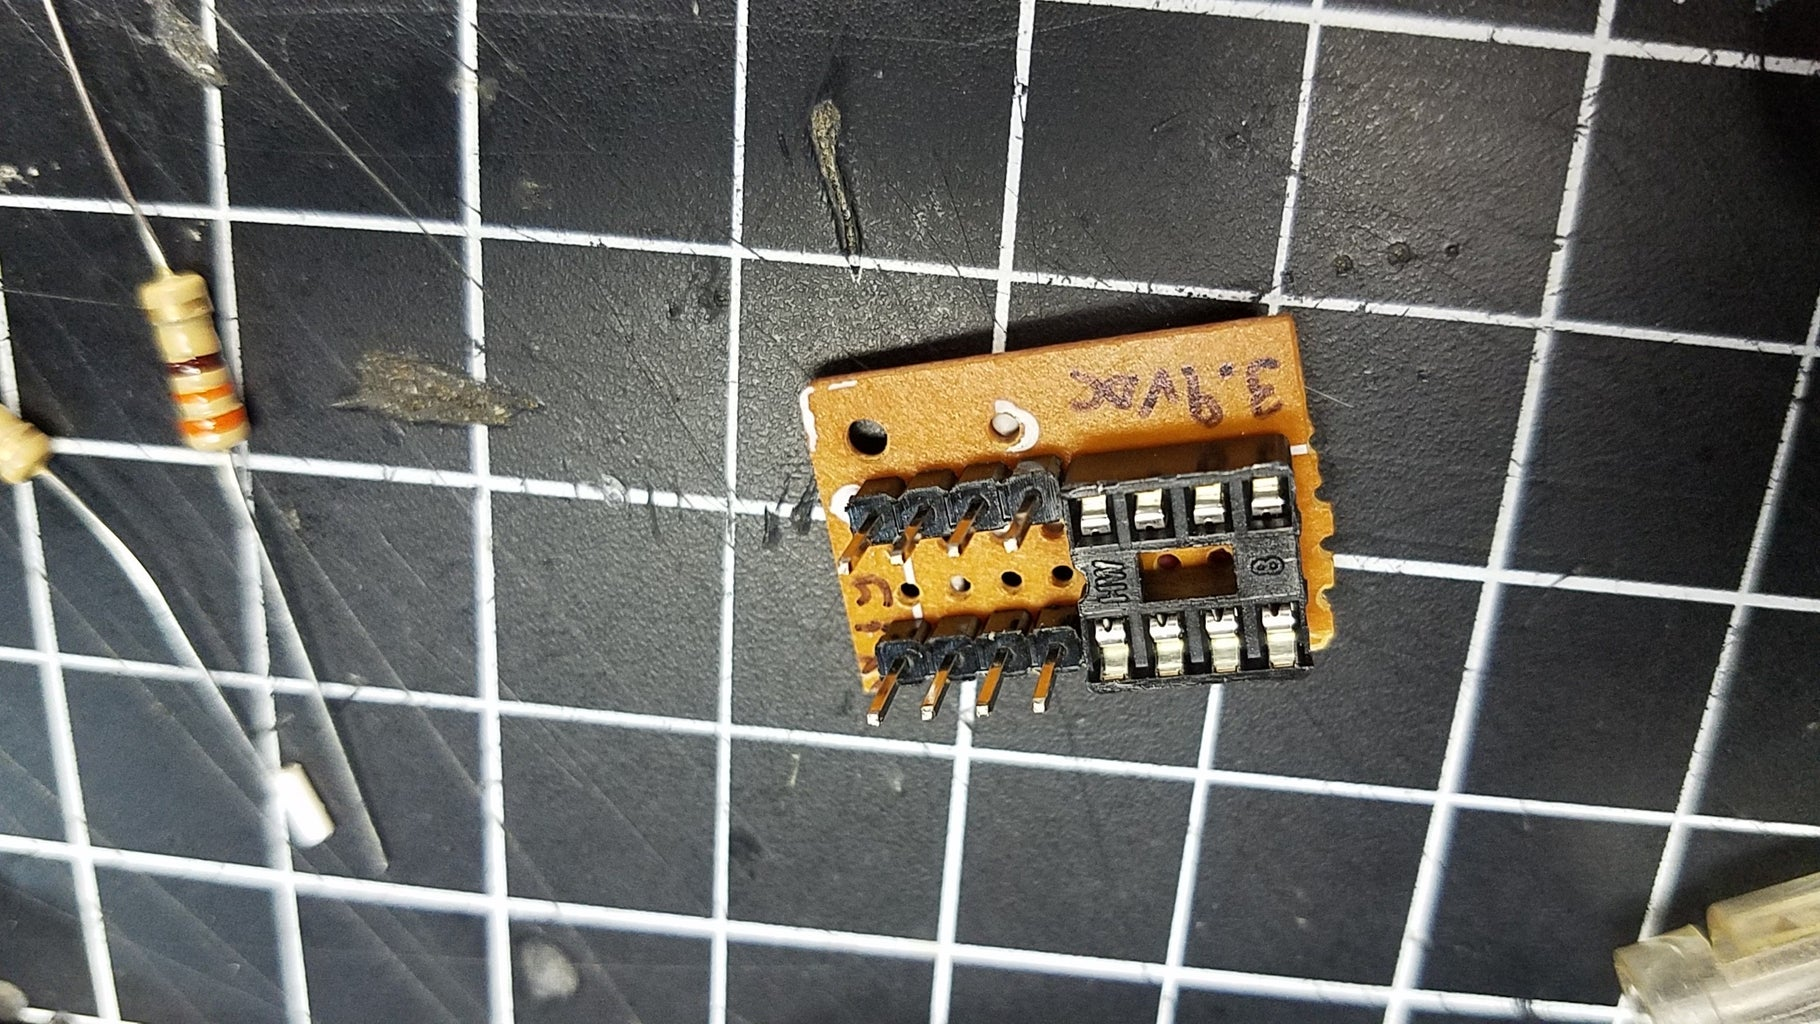 Starting With the Board for the Microcontroller